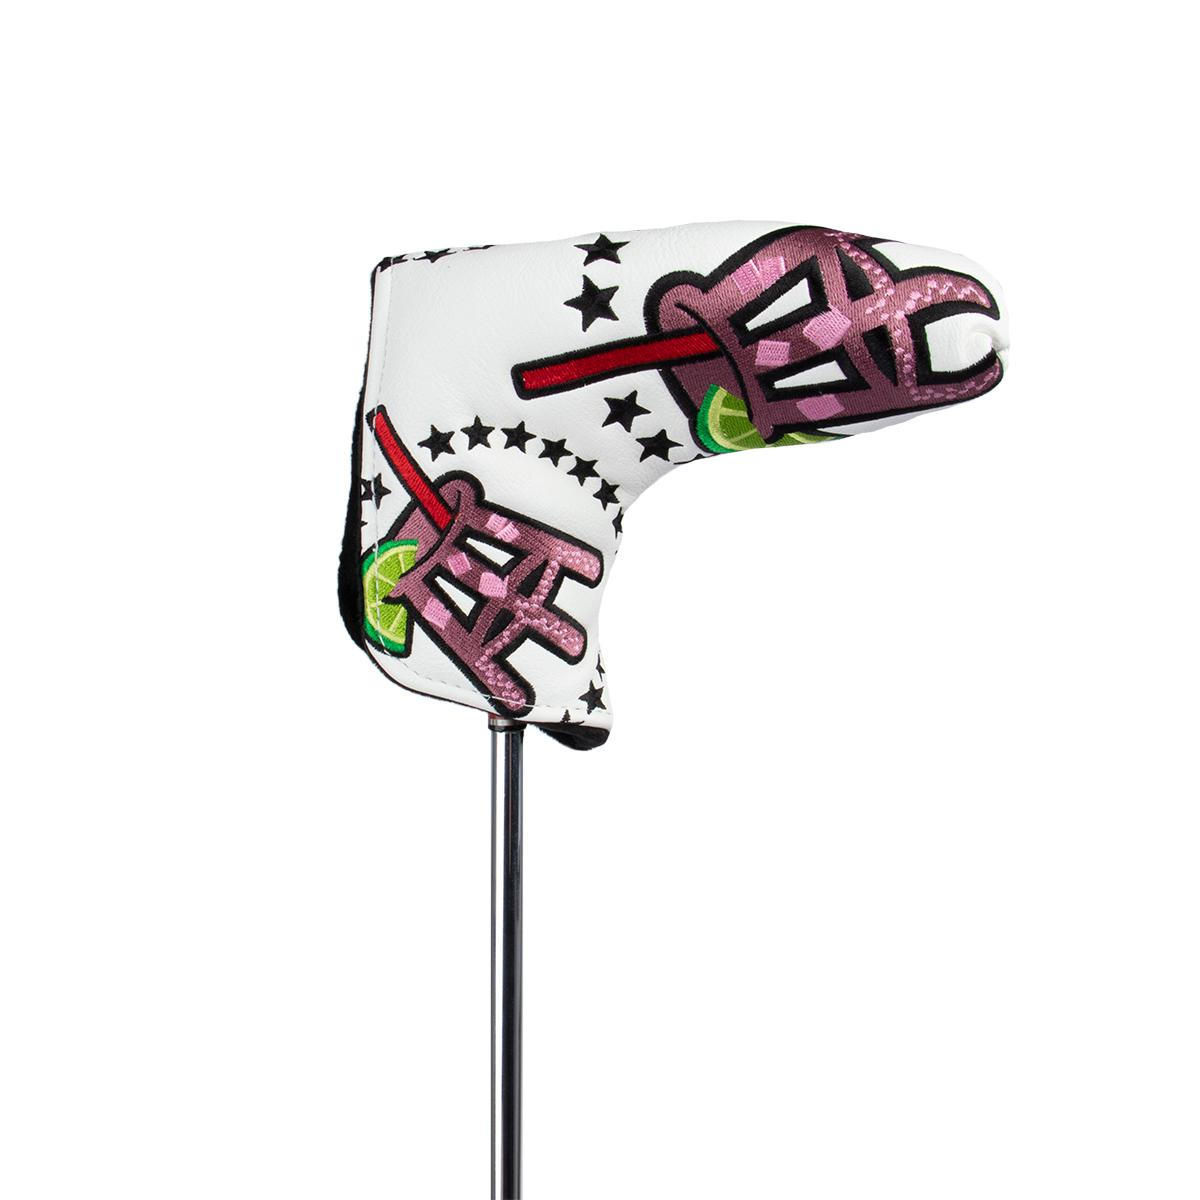 Transfusion Blade Putter Cover